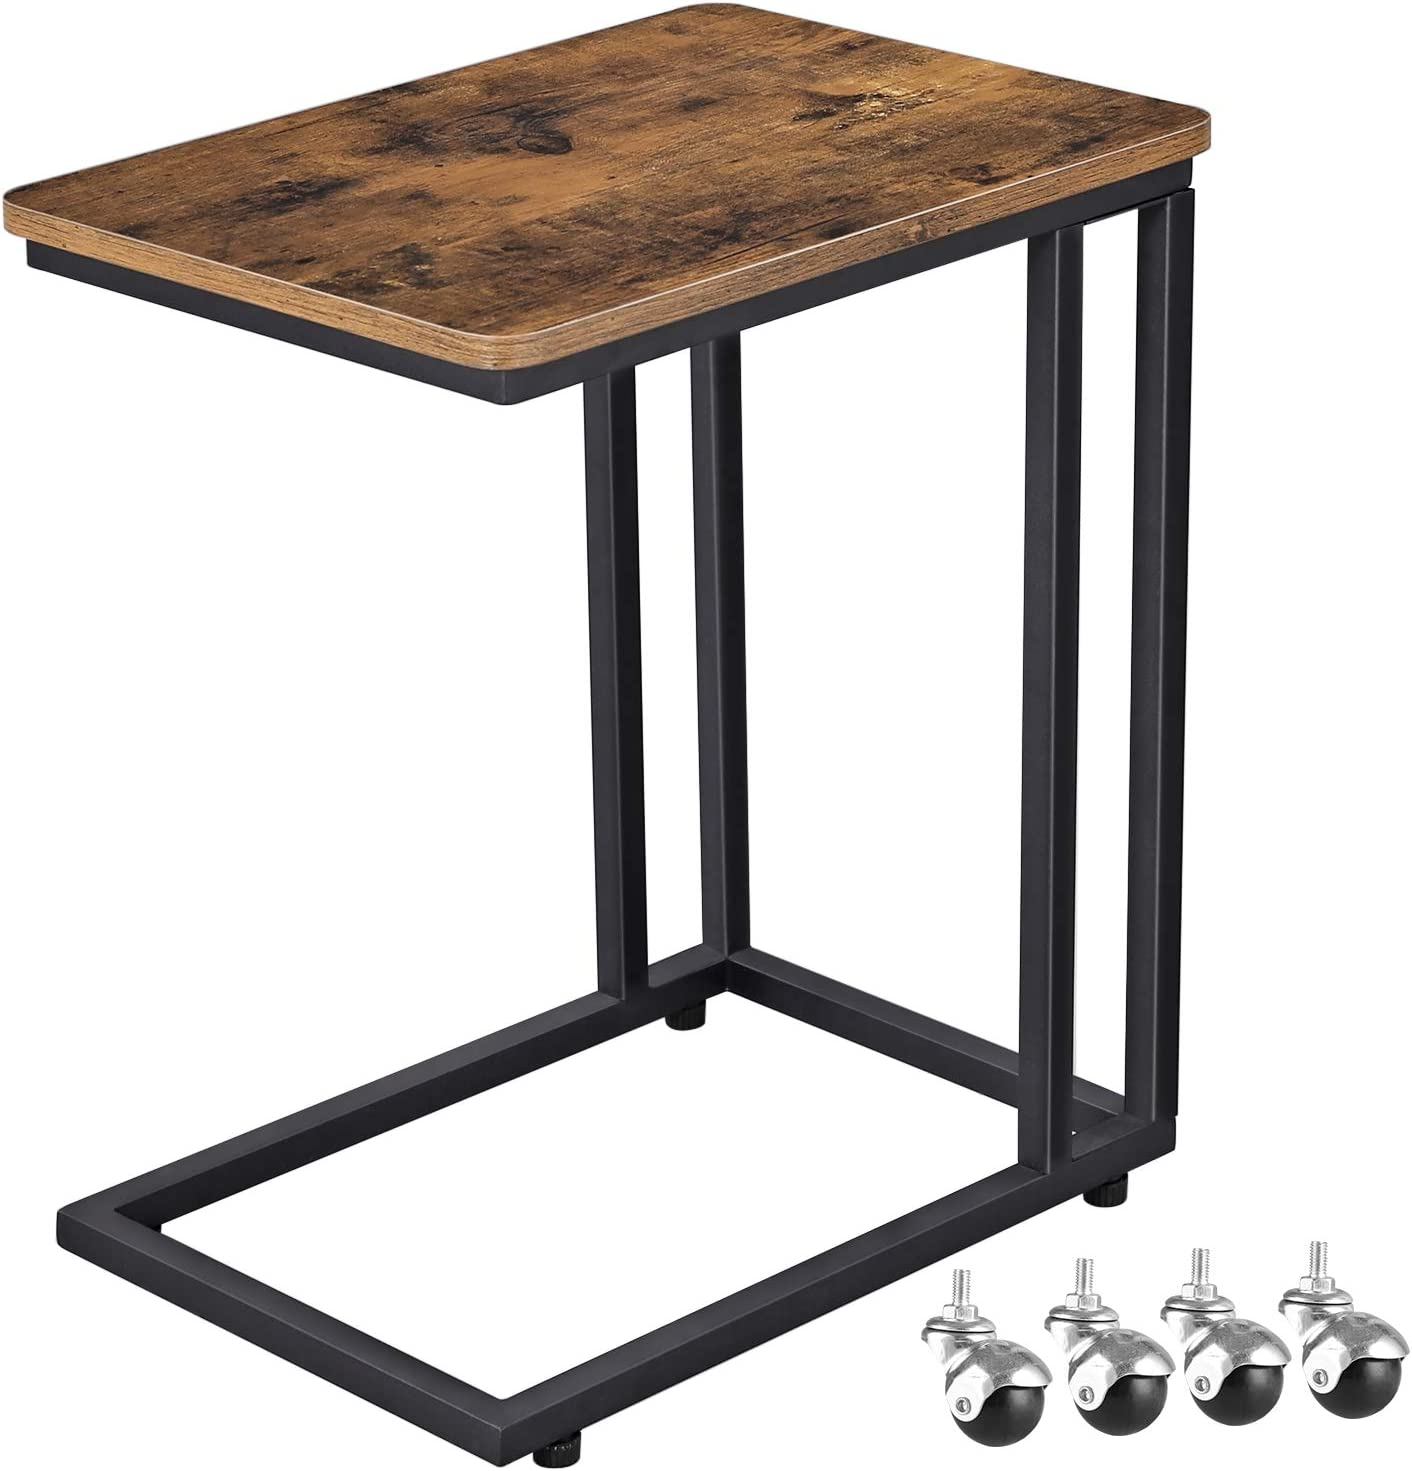 - VASAGLE Industrial Side Table, Mobile Snack Table For Coffee